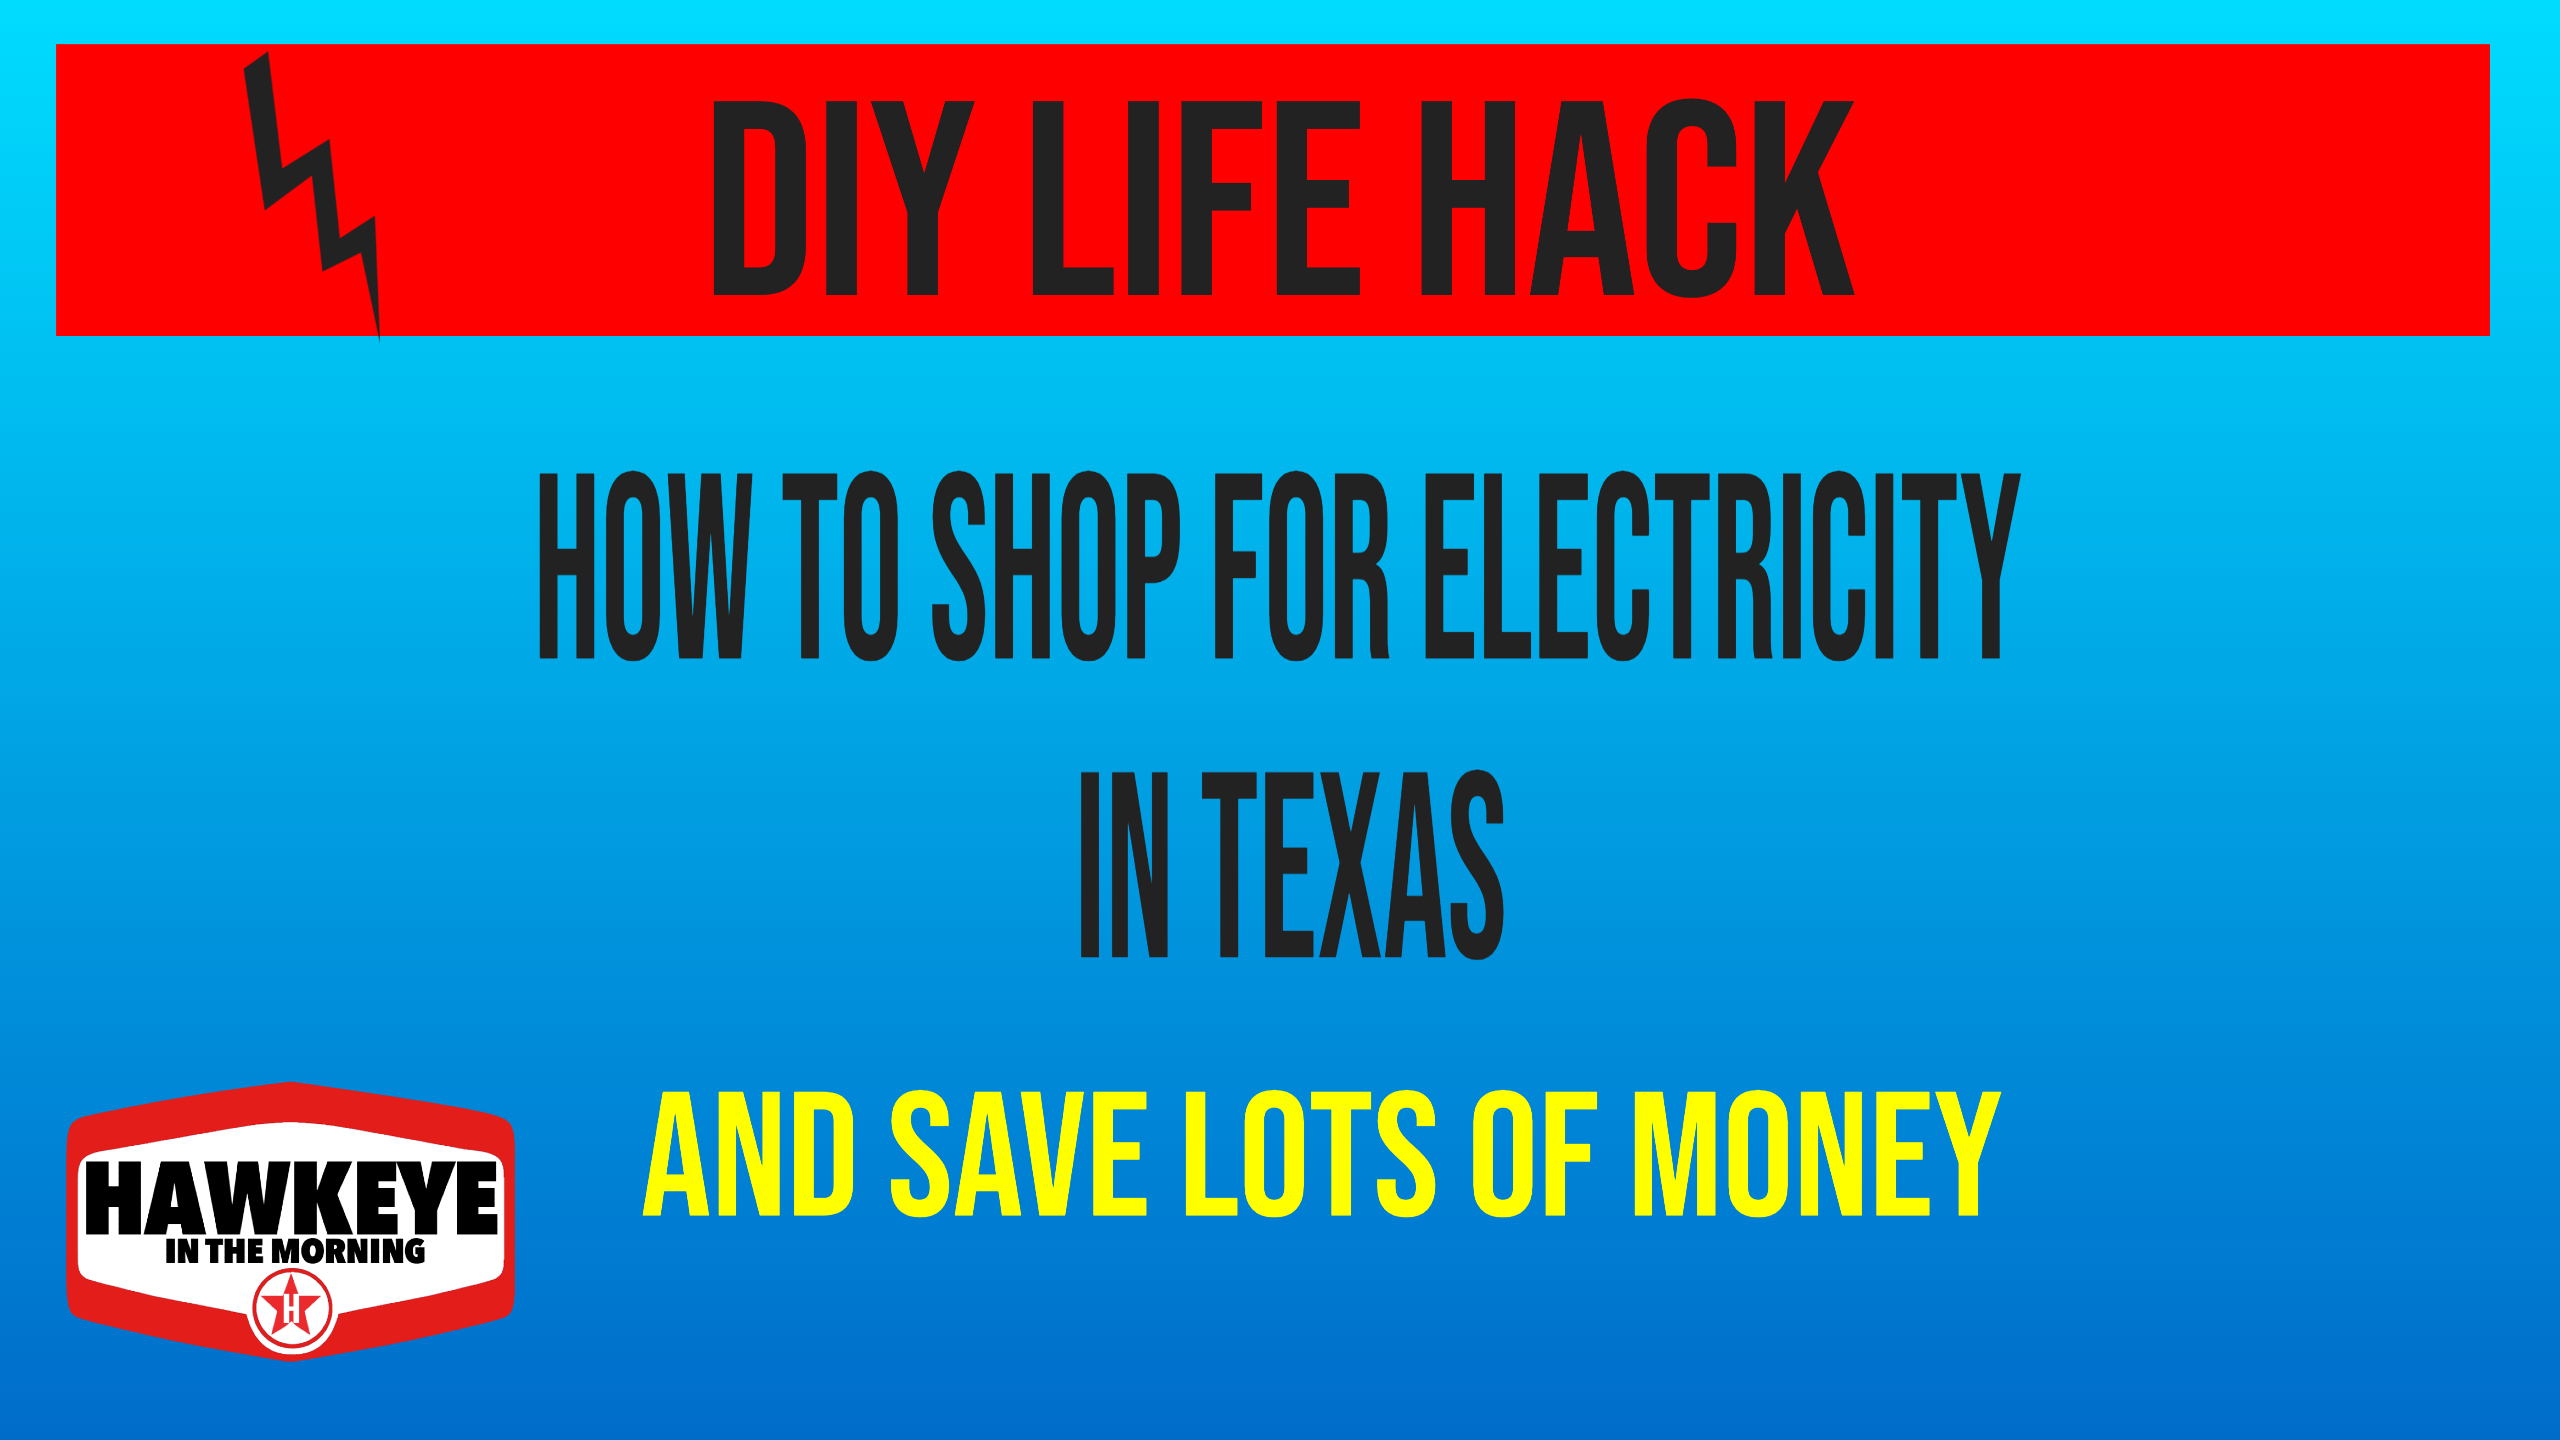 Check out Hawkeye's latest DIY Video:  How to Shop and Save Money on Electricity in Texas